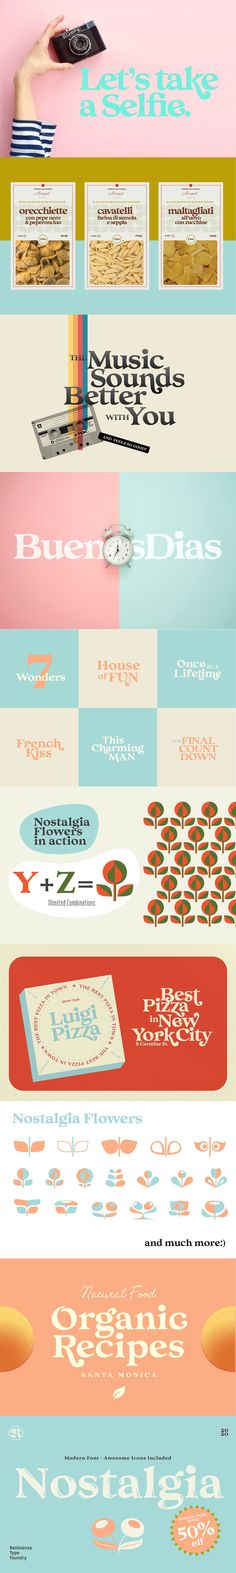 Say Hello to Nostalgia! A Modern Font with a retro feeling 3 Fonts Regular, Effect and Flowers --- You can Access your OpenType features and discover a large Best Serif Fonts, Central And Eastern Europe, Modern Fonts, Magazine Design, Say Hello, Wedding Cards, Nostalgia, Language, Let It Be